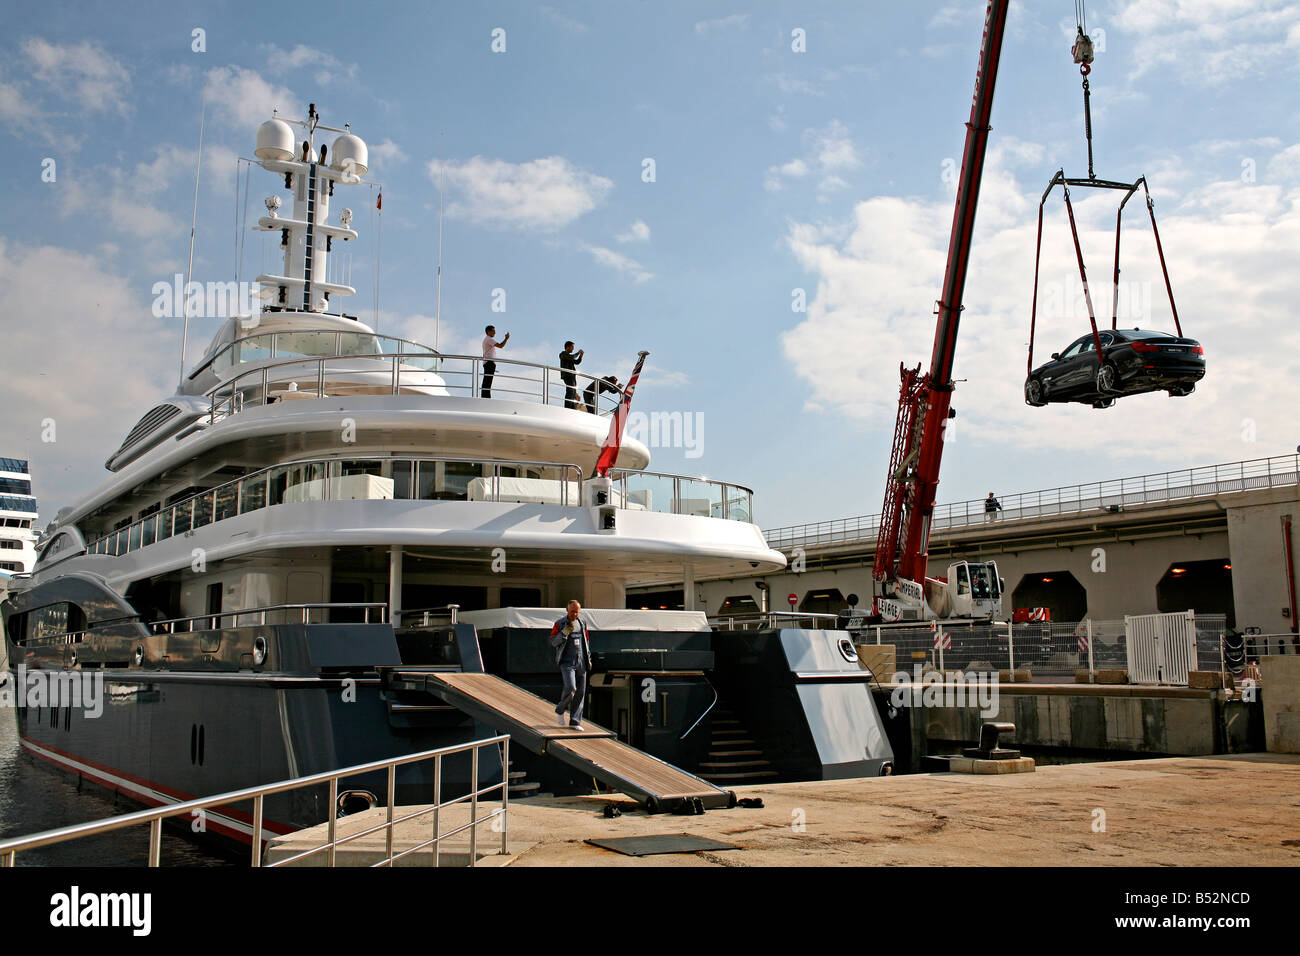 007 Super Yacht Stock Photos & 007 Super Yacht Stock Images - Alamy